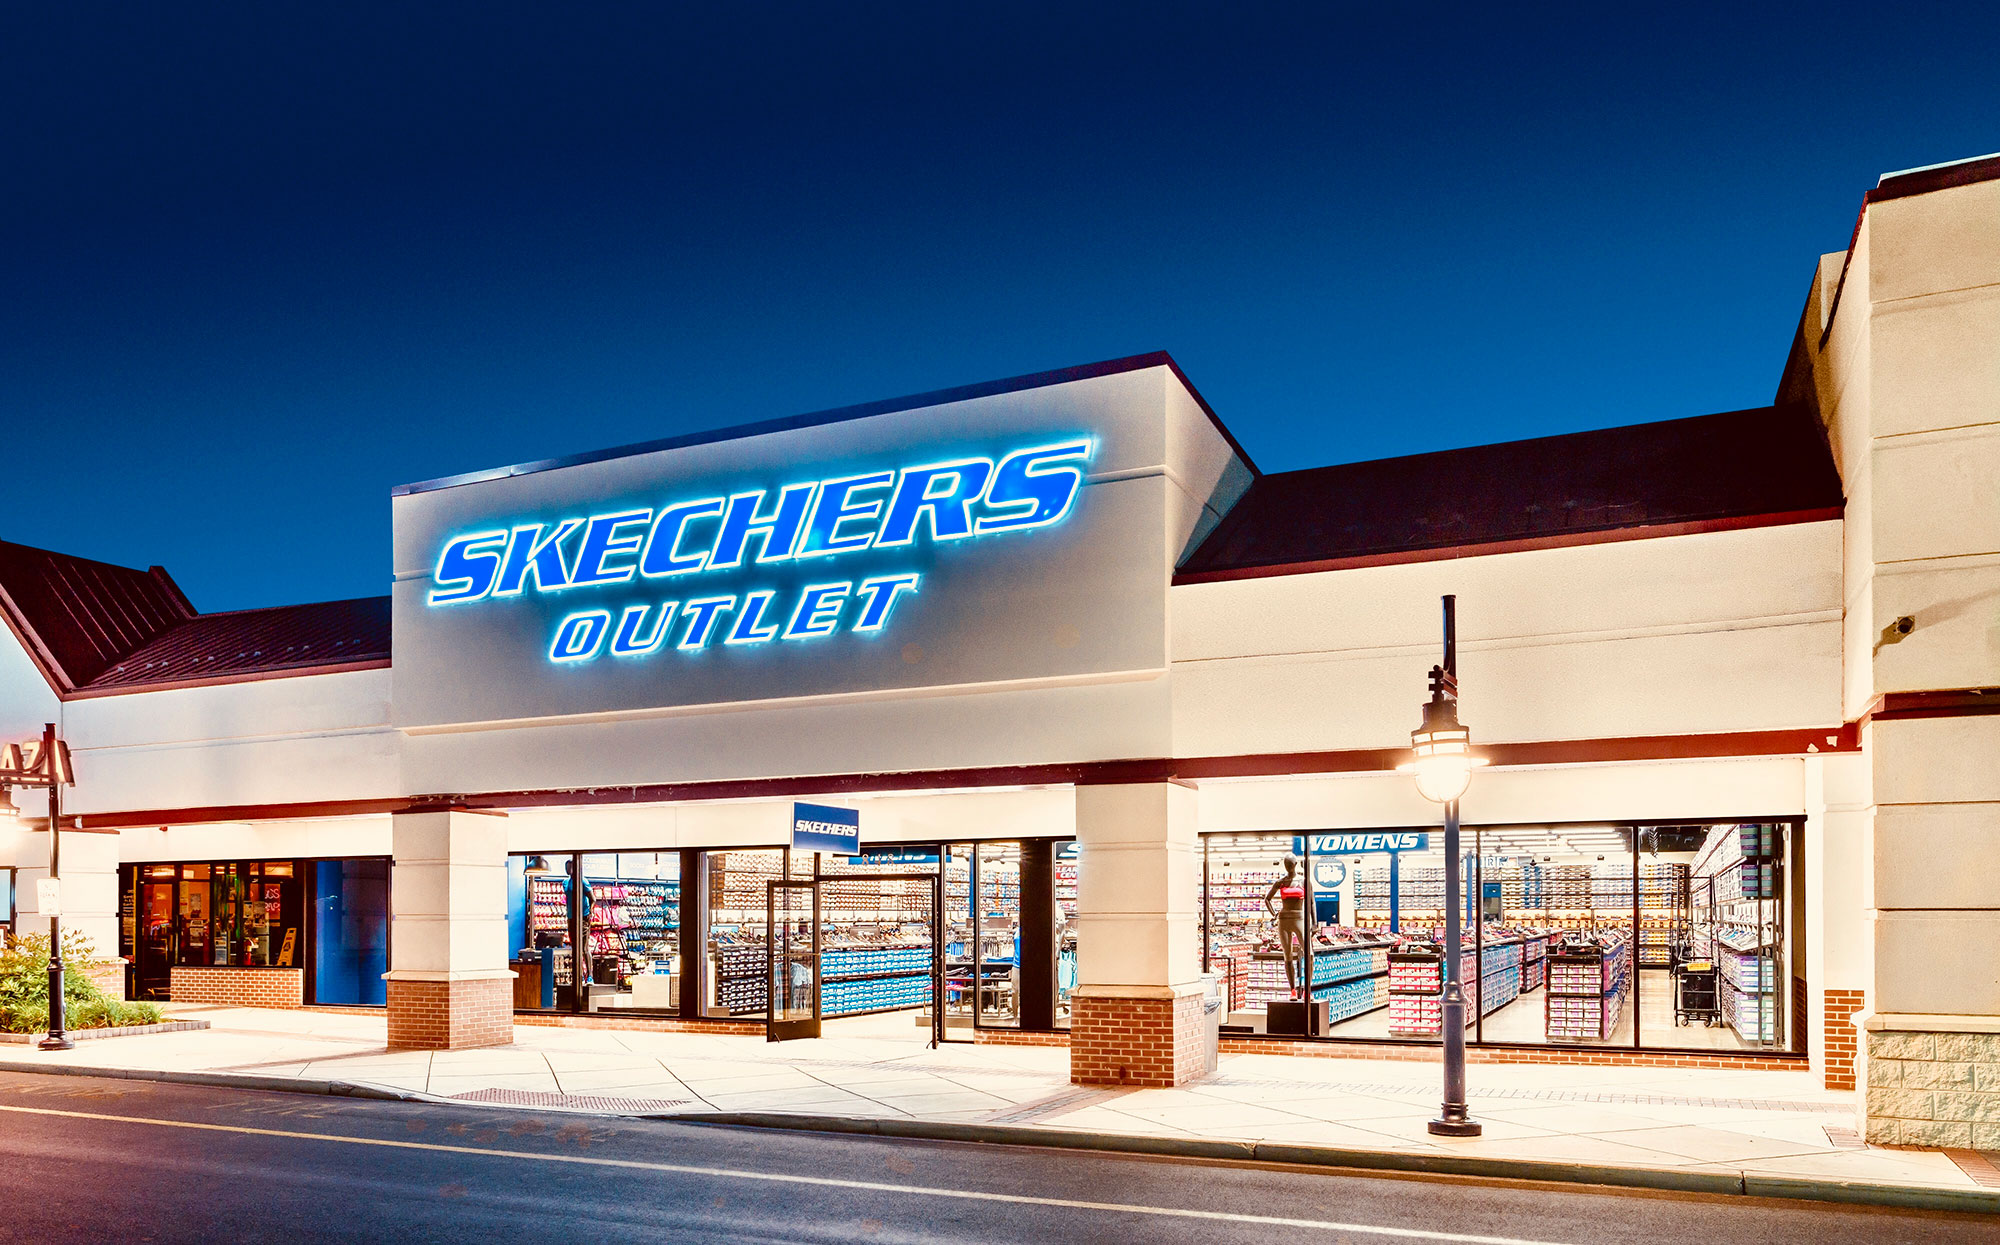 Skechers Shoe Outlet on E Broadway Blvd